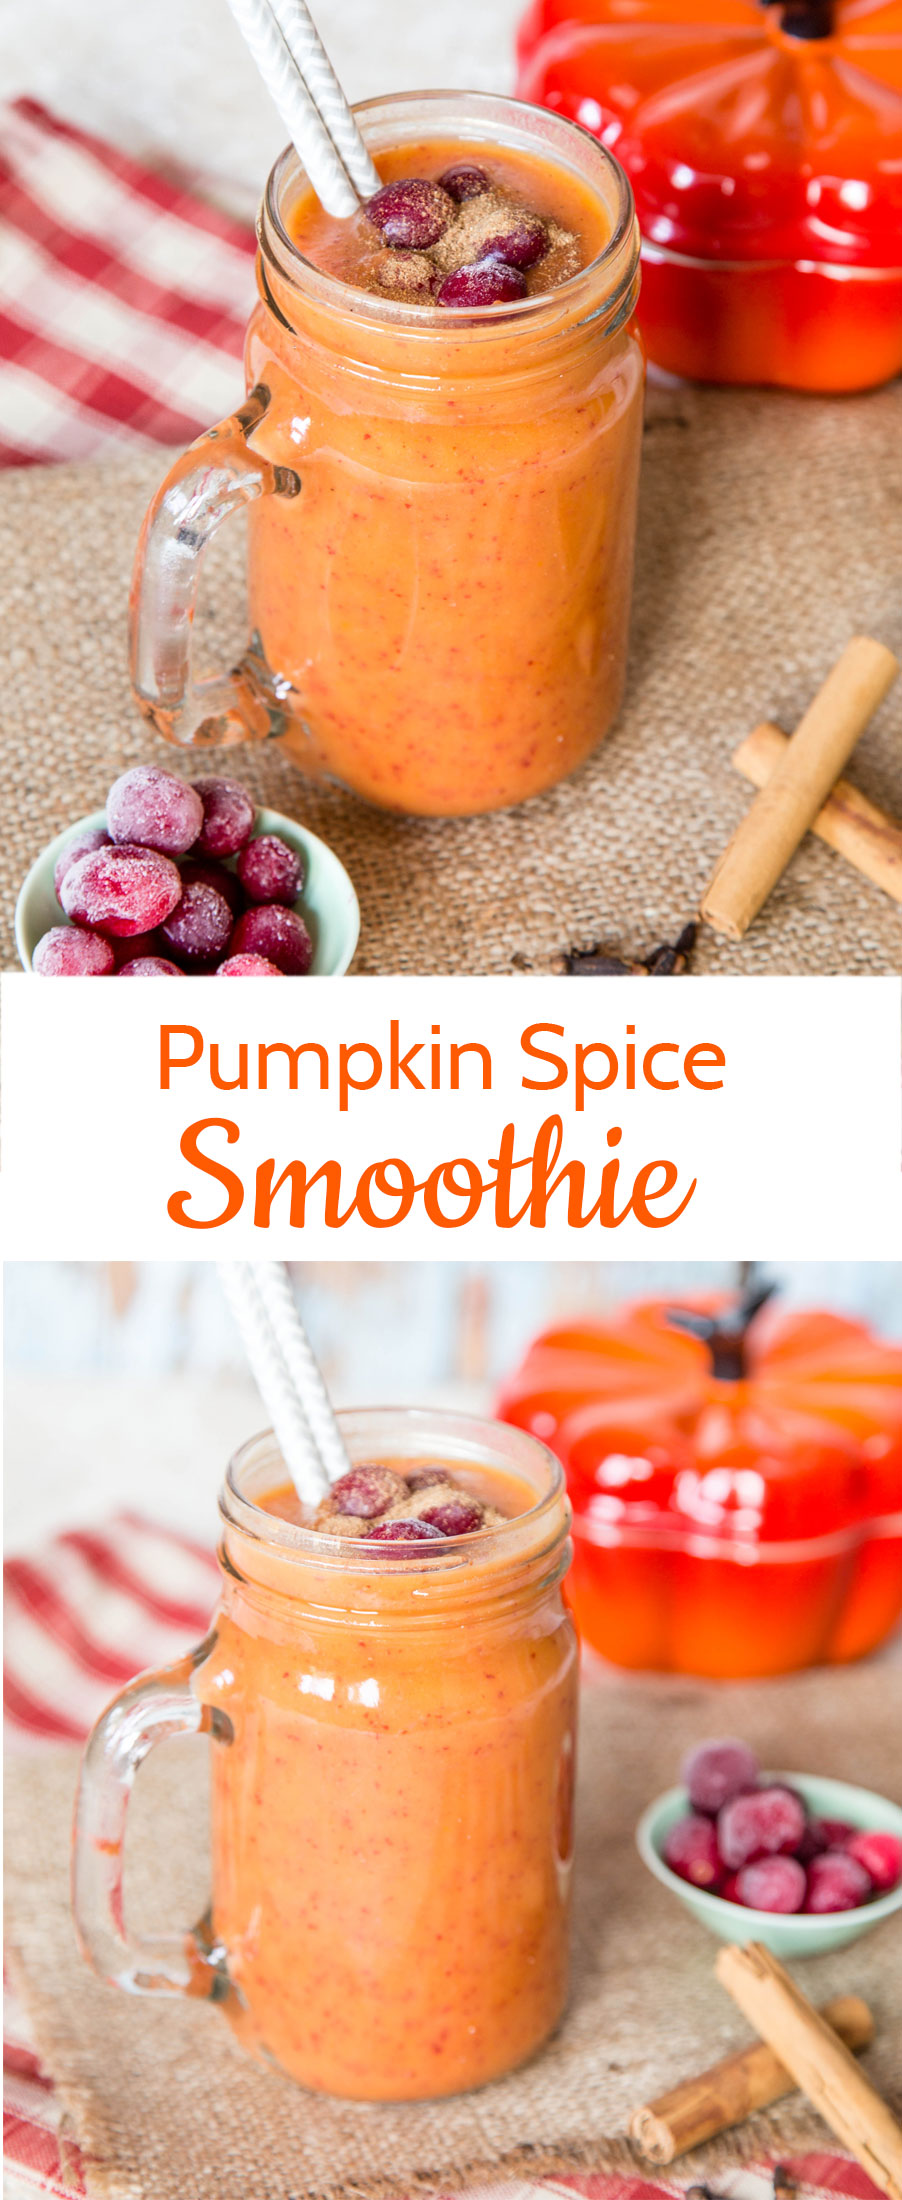 This brilliantly coloured autumnal smoothie with the secret ingredient of spiced pumpkin is perfect for fall.